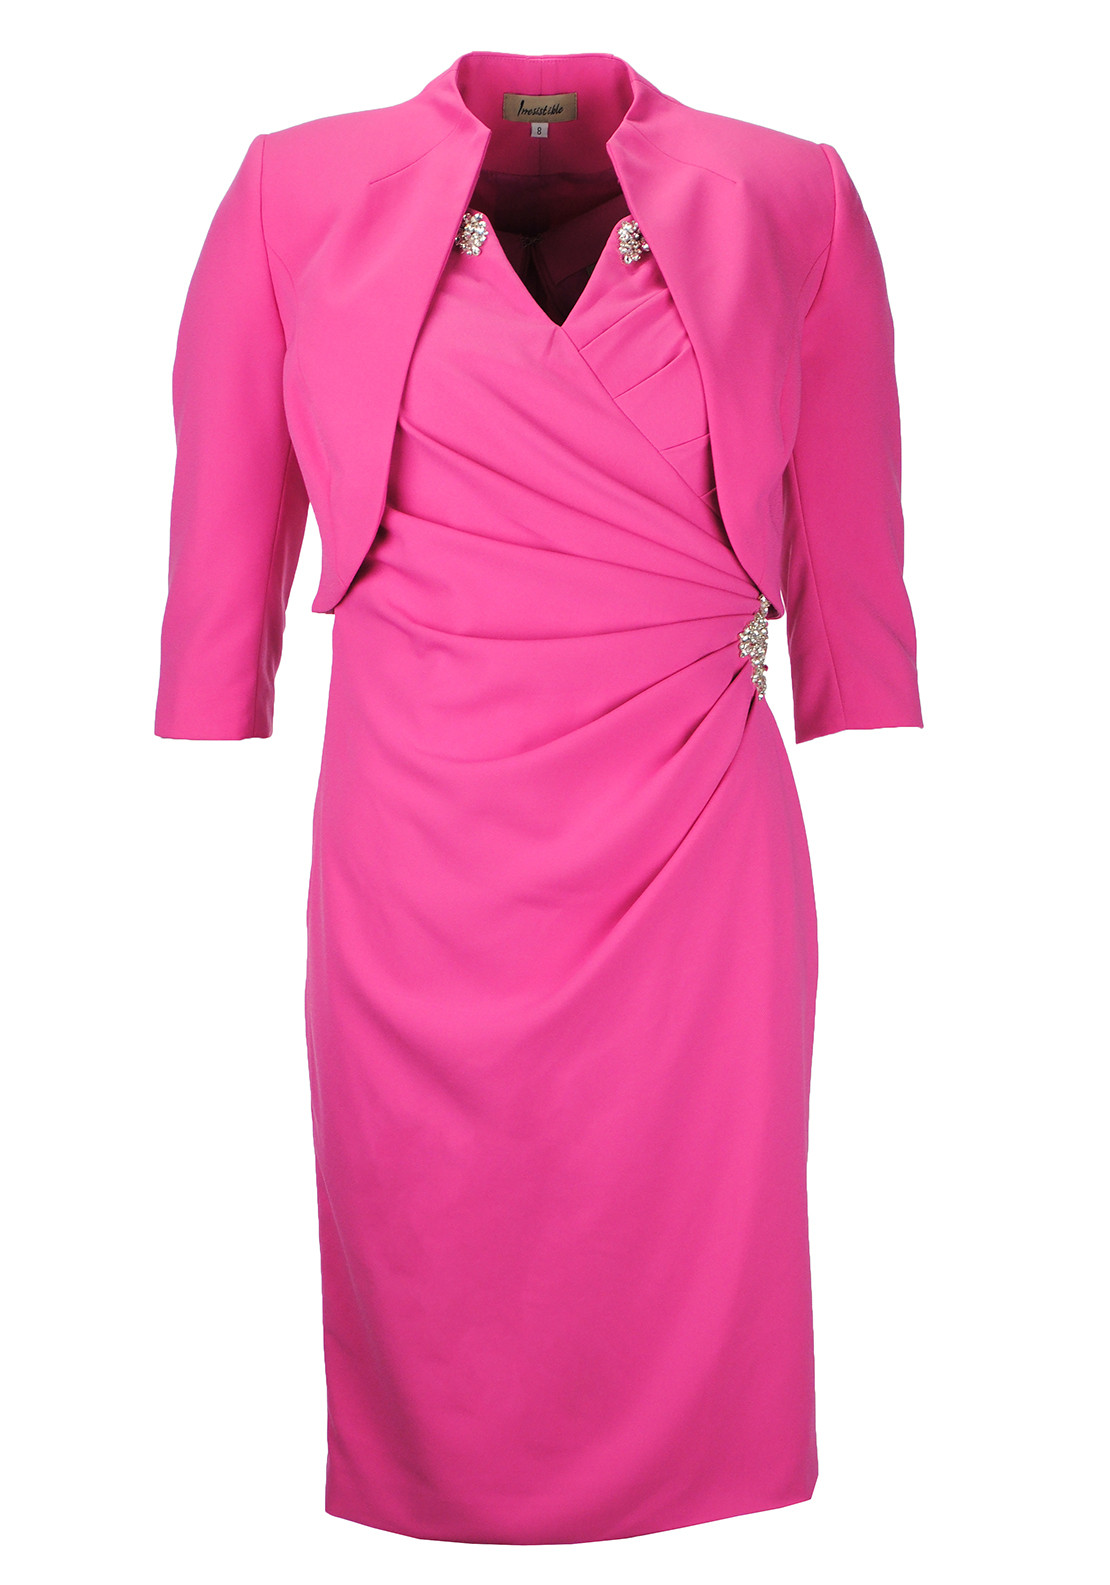 Irresistible Dress and Bolero Jacket, Pink